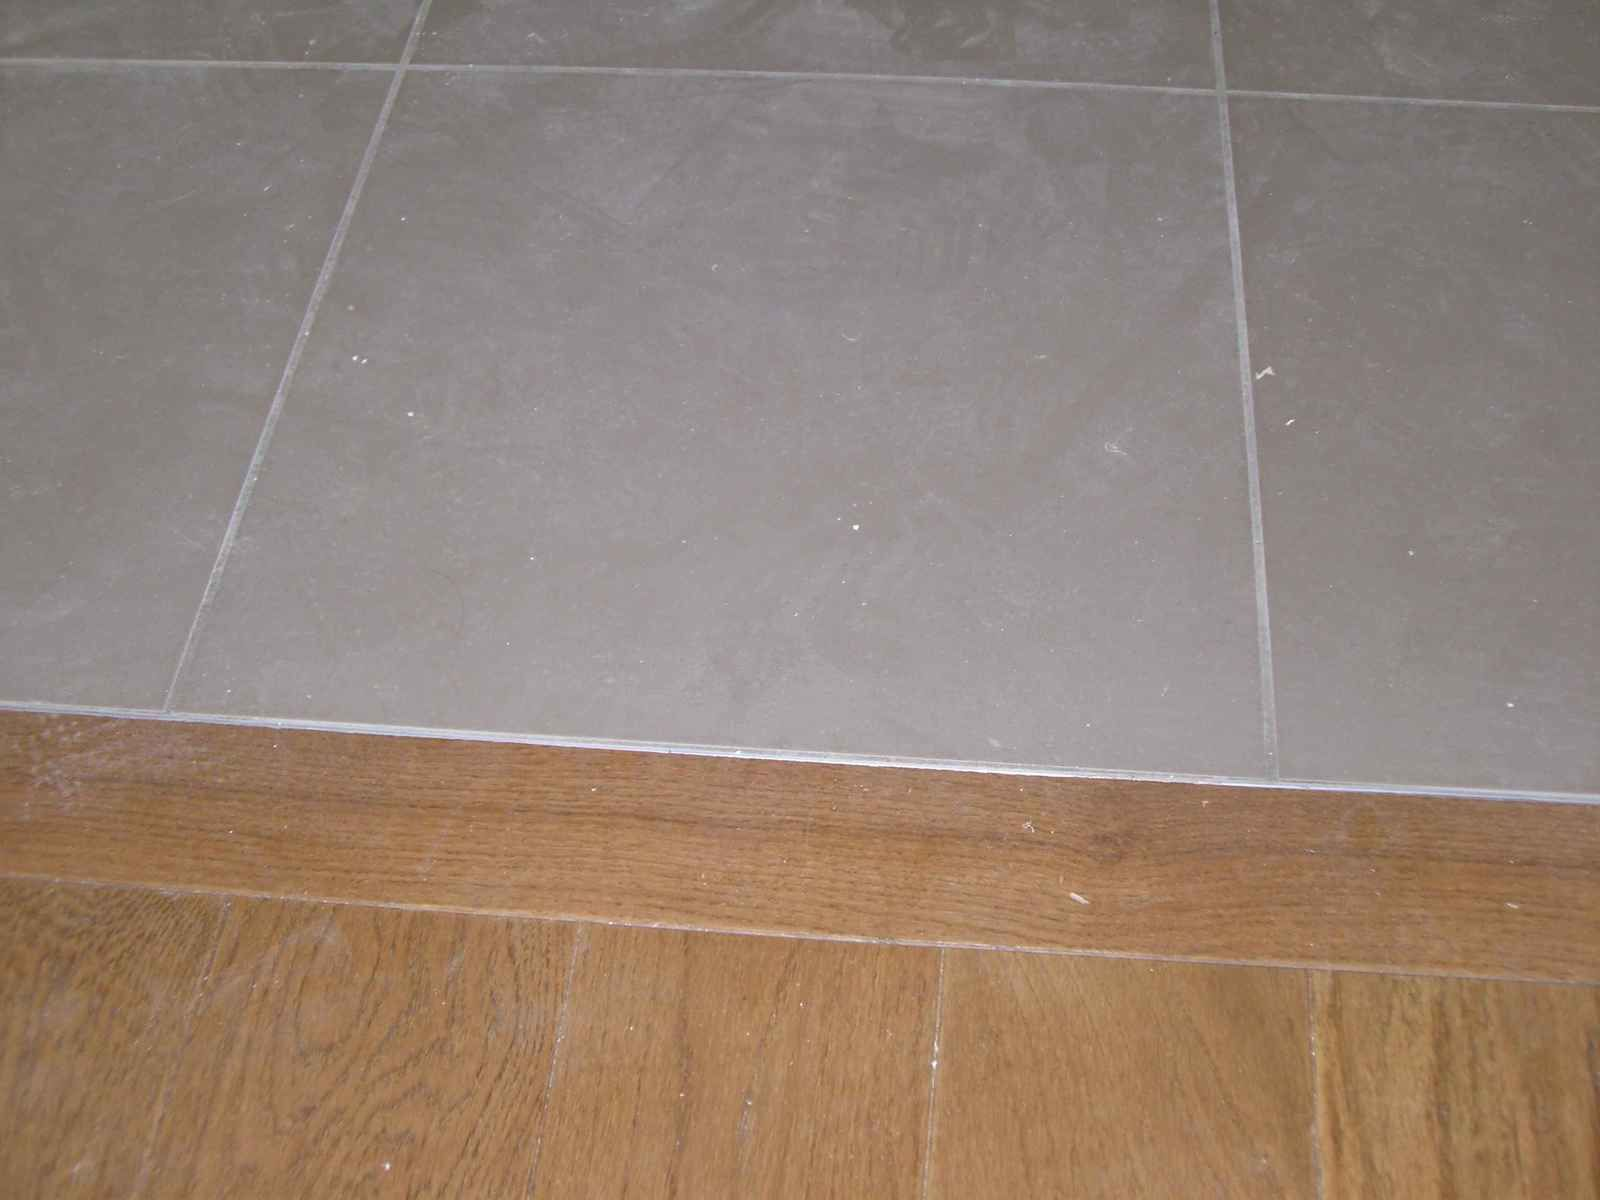 Parquet carrelage jonction parquet carrelage moderne for Carrelage vs parquet